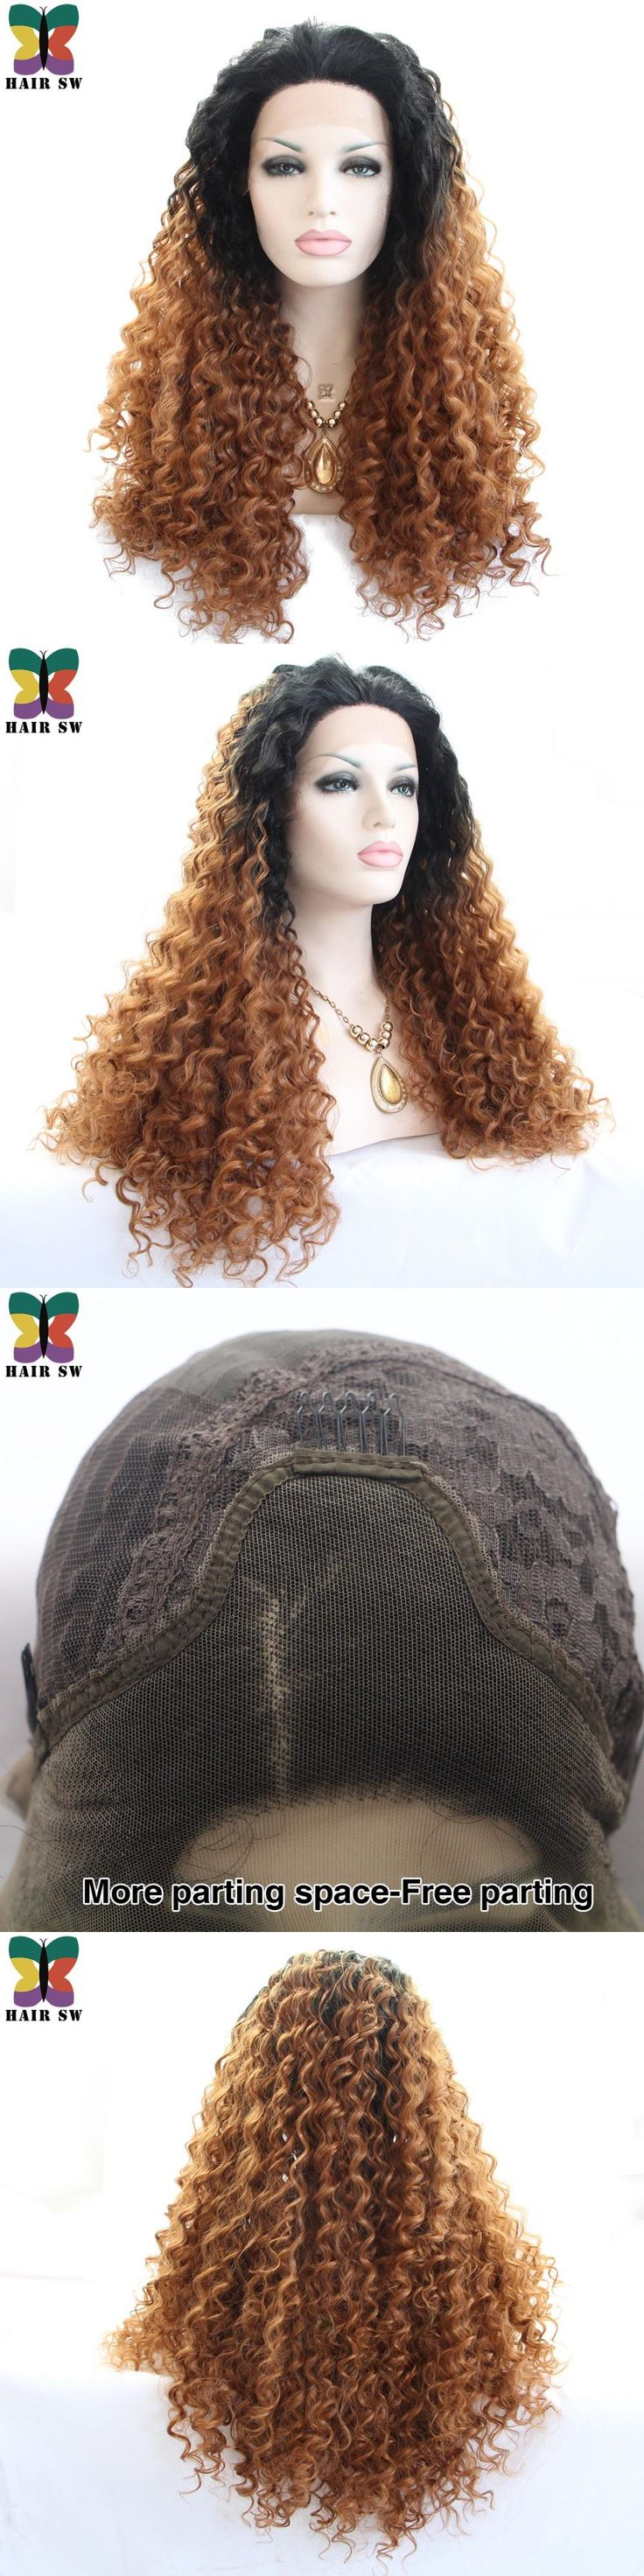 HAIR SW Long Deep Wave Lace Front Wig Synthetic Auburn Ombre With Dark Root Layers Free Part Drag Queen Lace Wig For Afro Women